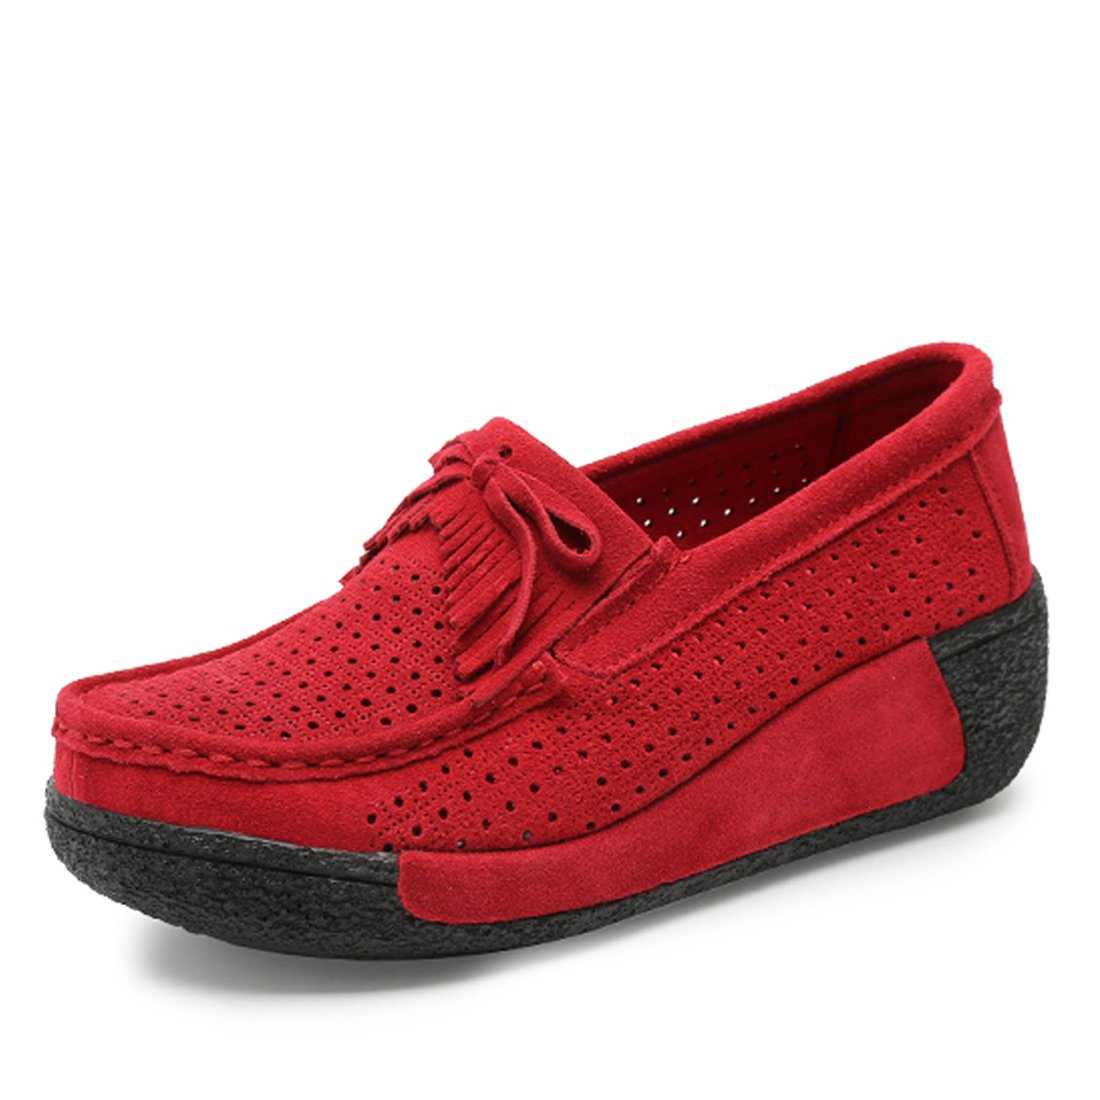 Z.SUO Mocassins Femmes Chaussures B076GHYDC5 Suède Rouge Casuel Confort Chaussures Loafers Rouge 8f63092 - latesttechnology.space